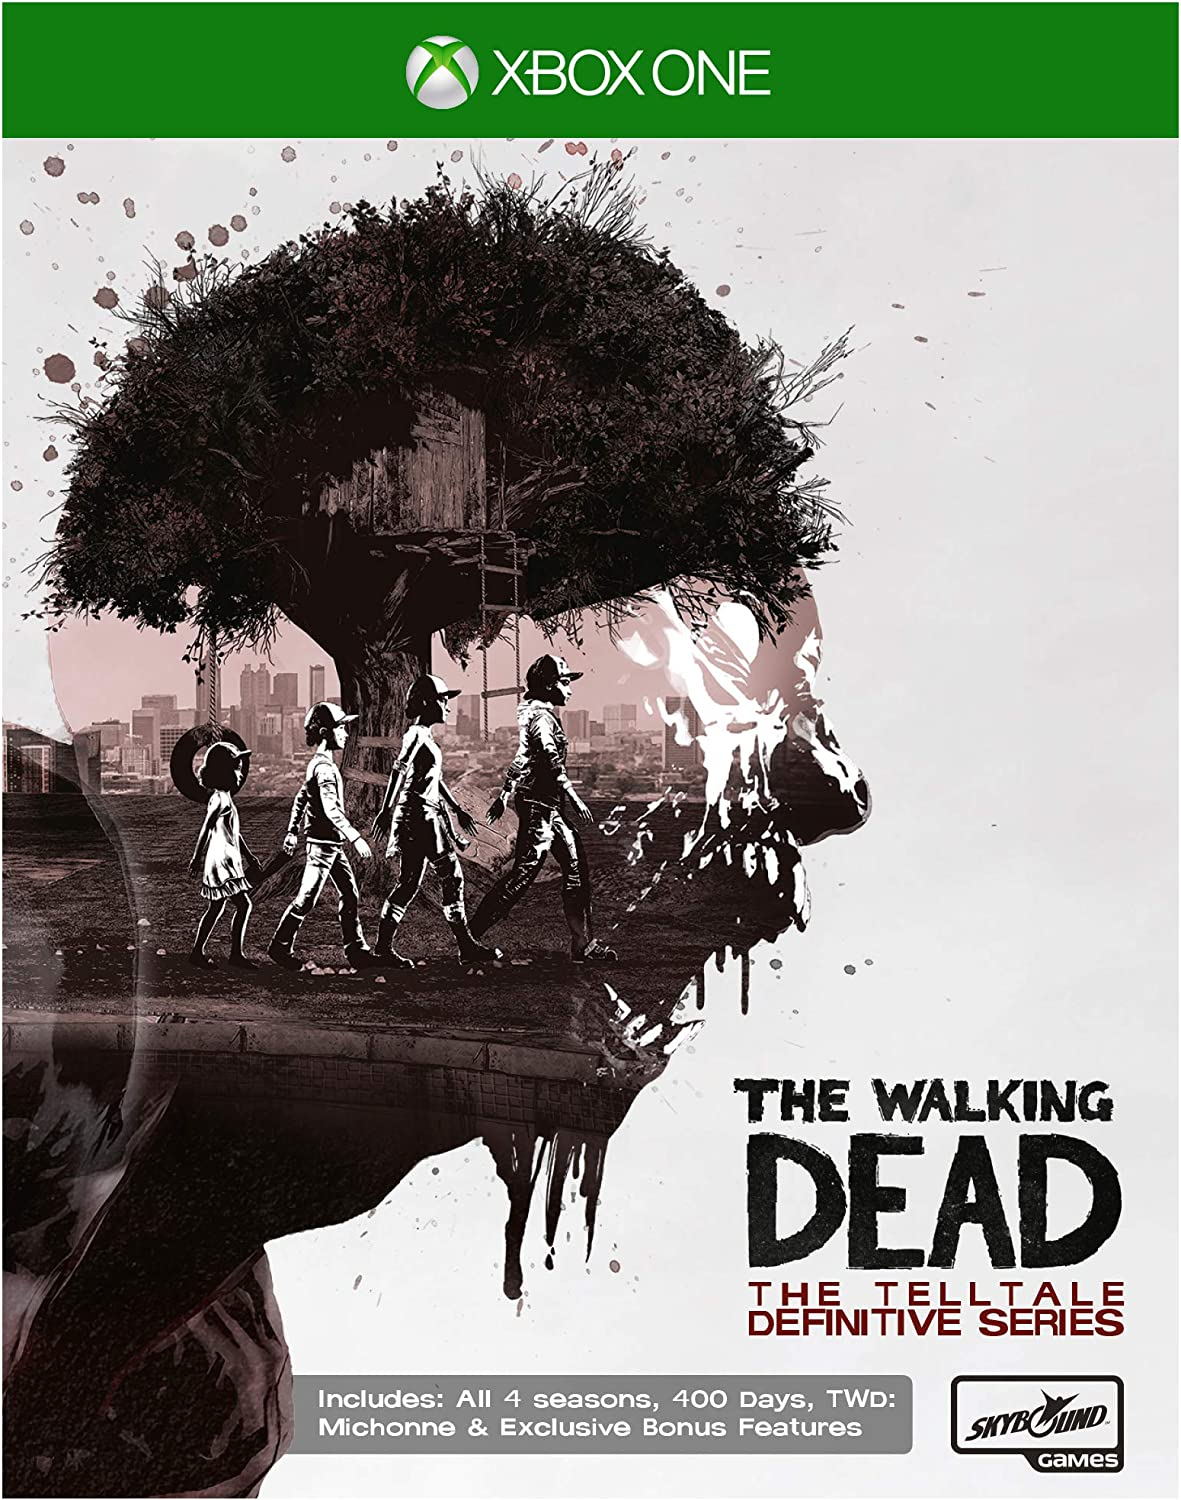 The Walking Dead: The Telltale Definitive Series: Amazon.es: Videojuegos